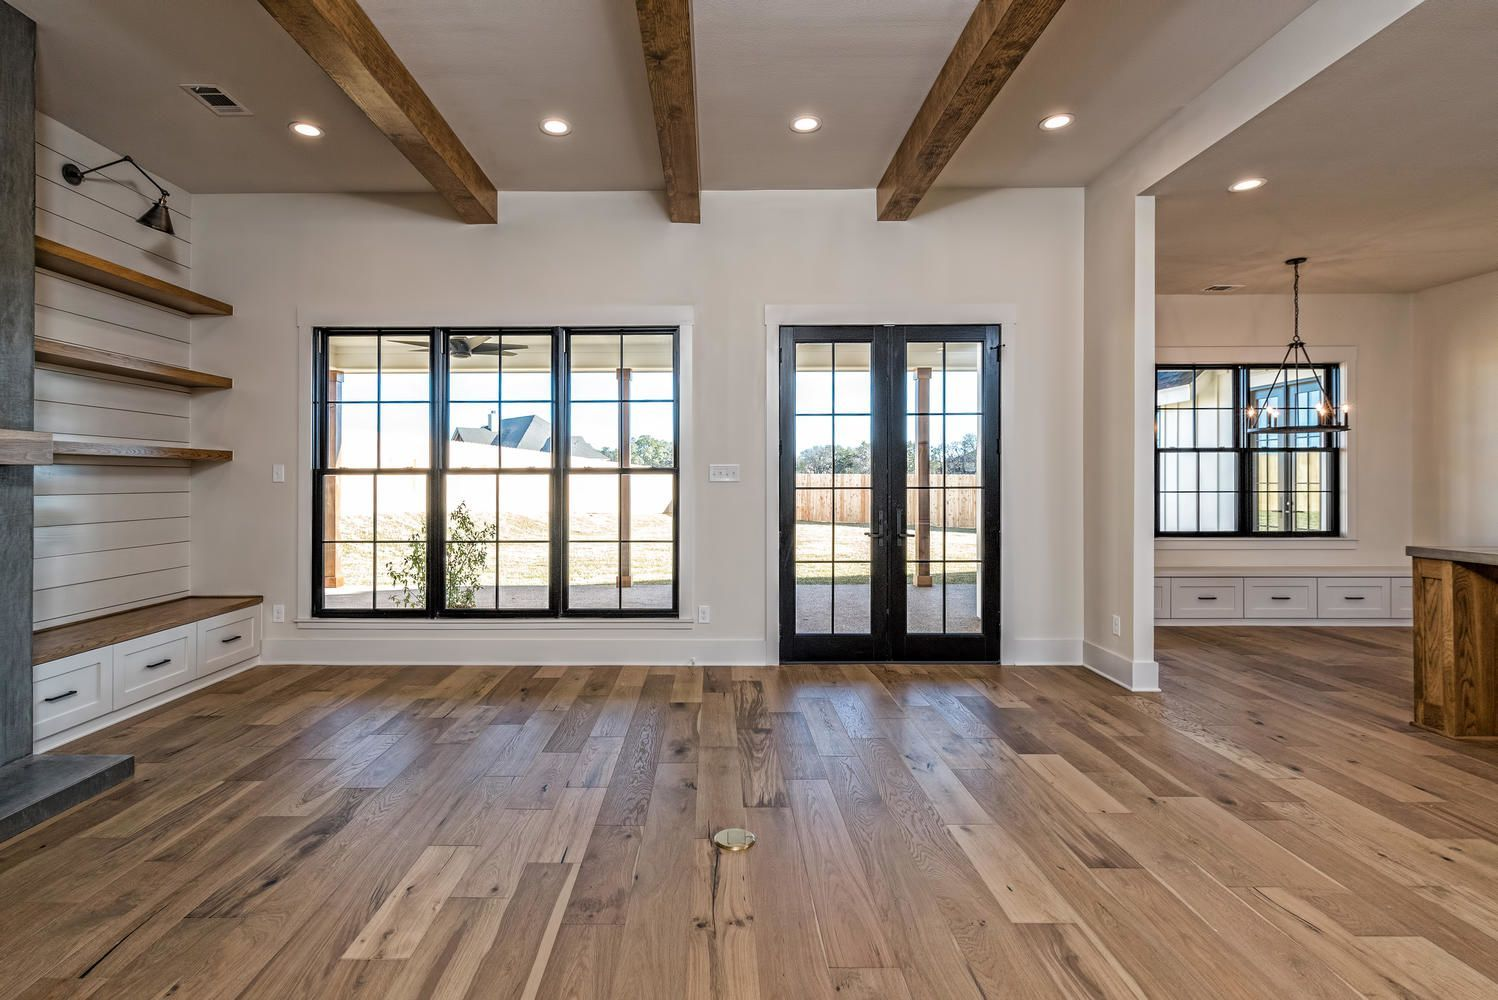 Snag This Brand New Home Designed By Chip And Joanna Gaines Joanna Gaines House Building A New Home Magnolia Joanna Gaines